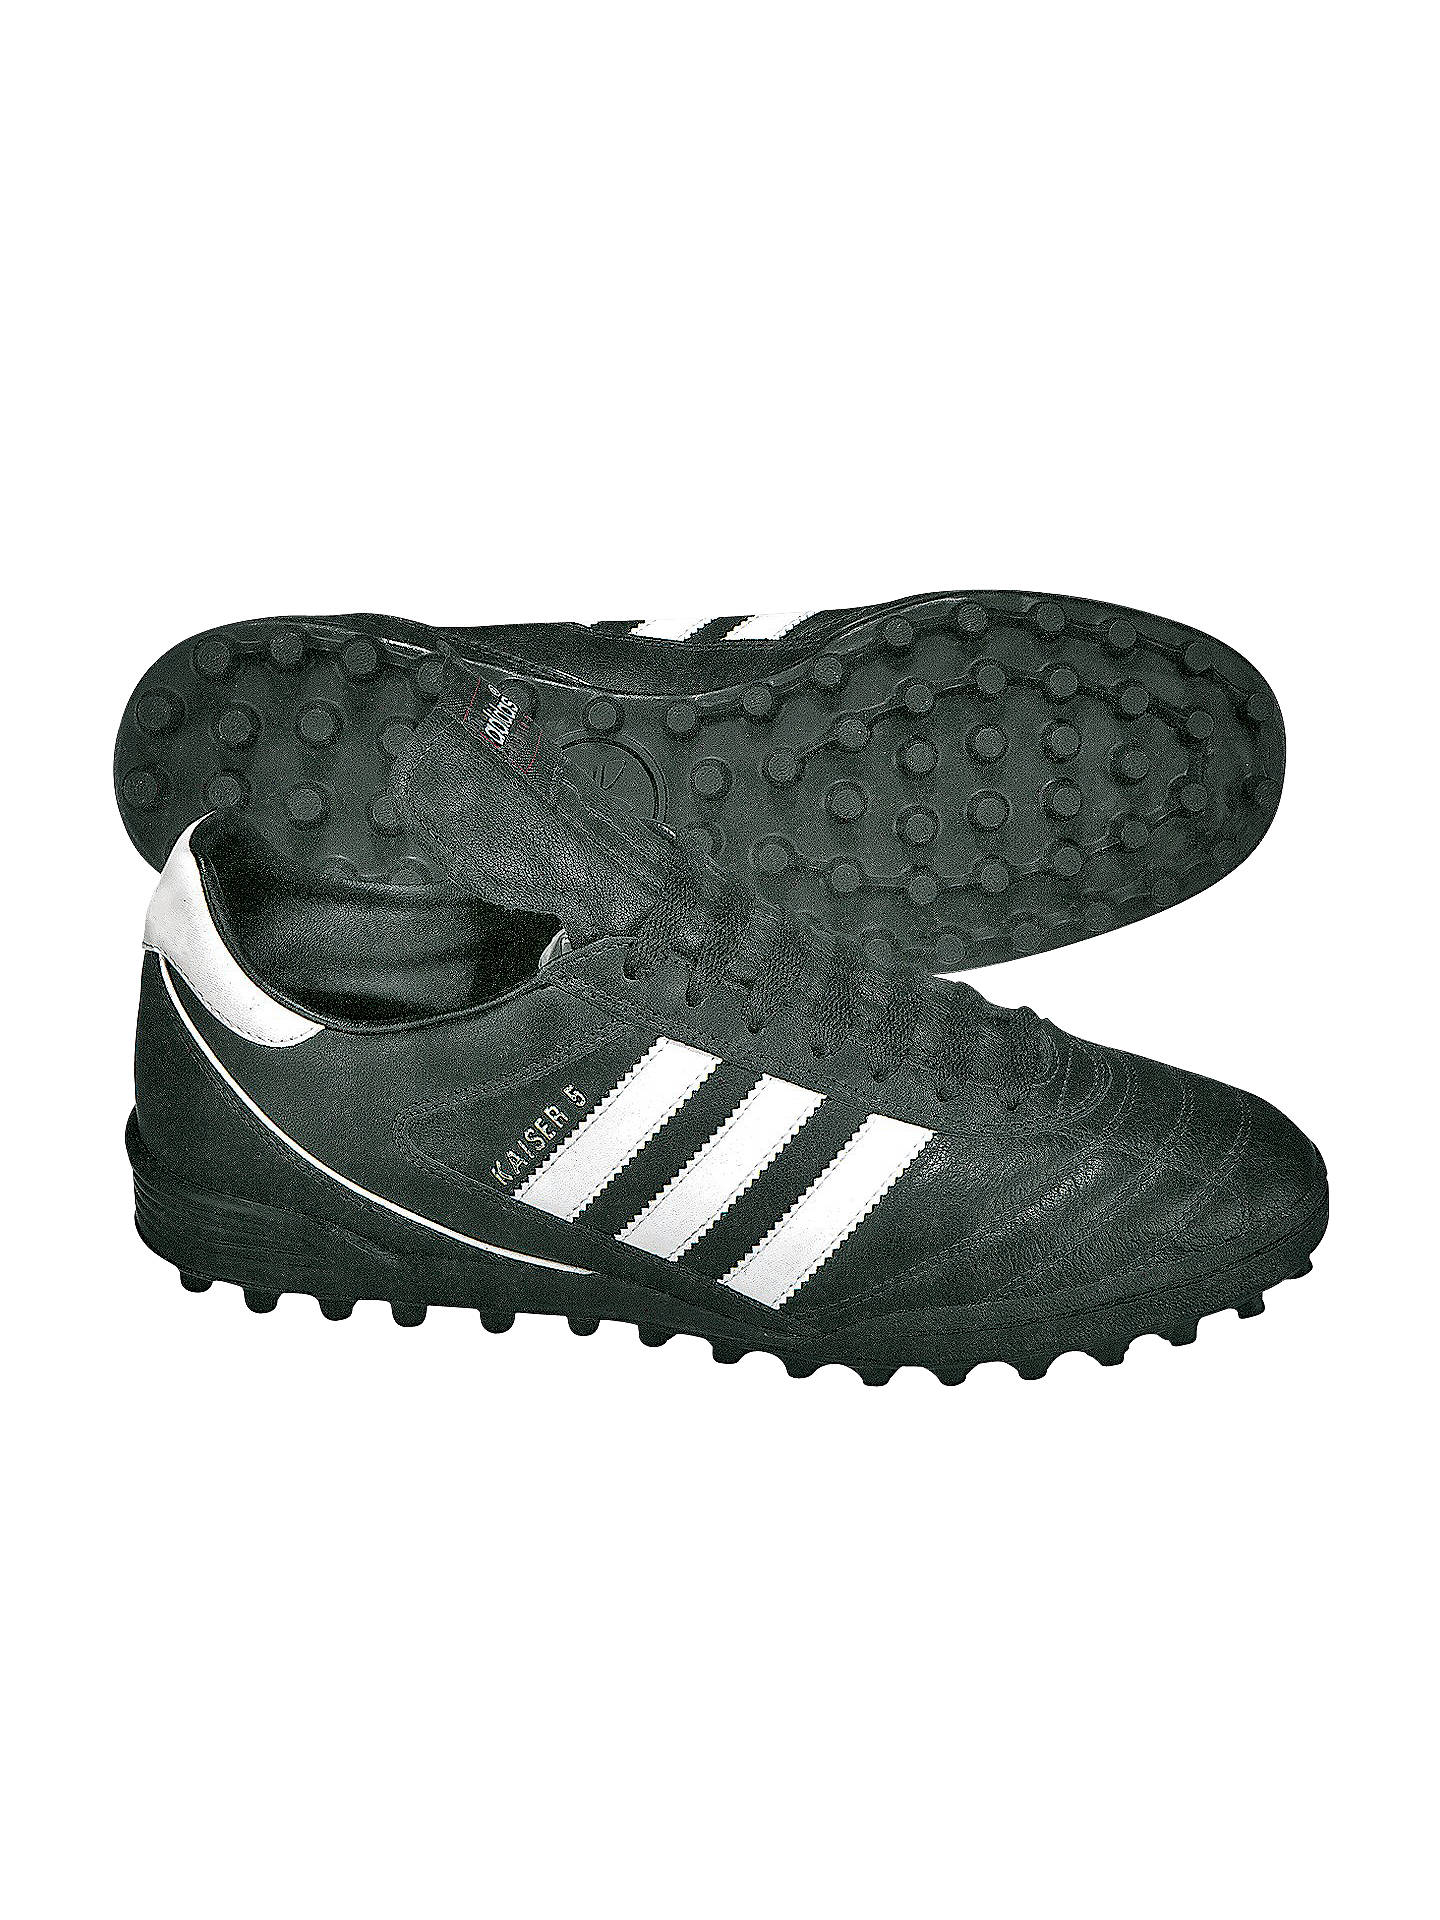 6366e9d38af Adidas Kaiser 5 Team Men's Astro Turf Football Boots at John Lewis ...